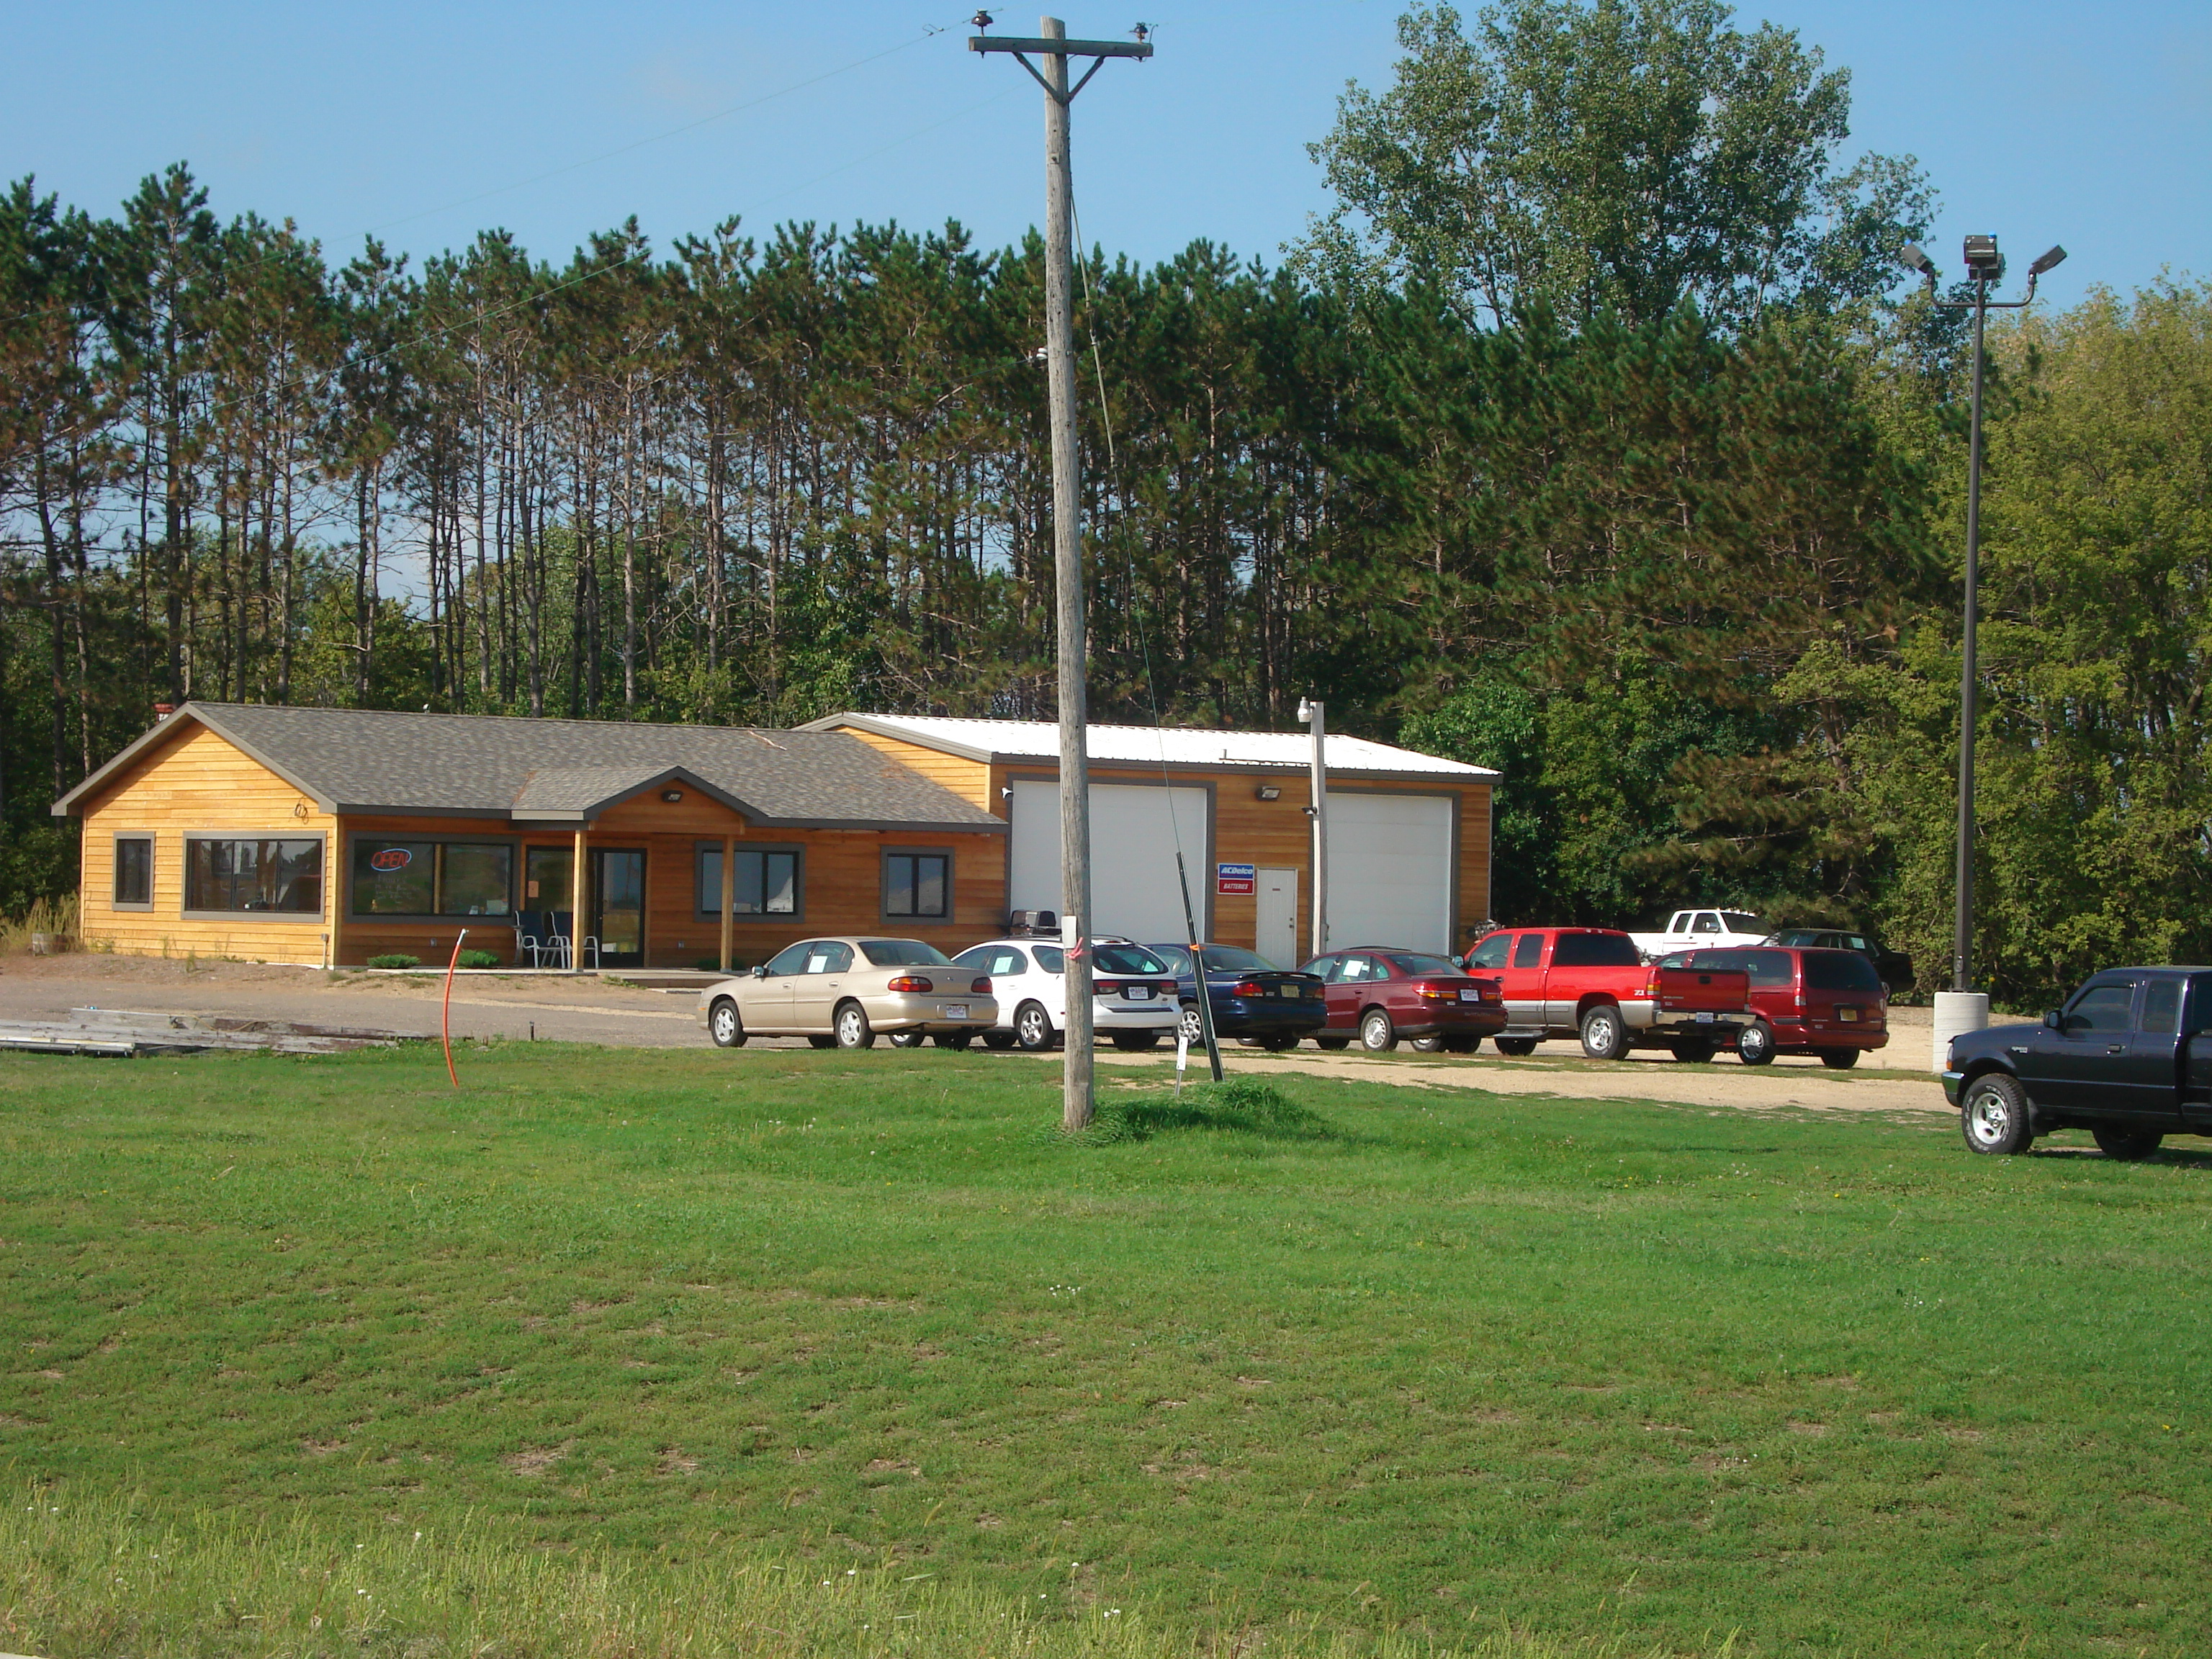 Valley Auto Sales For Sale in New Richmond, WI